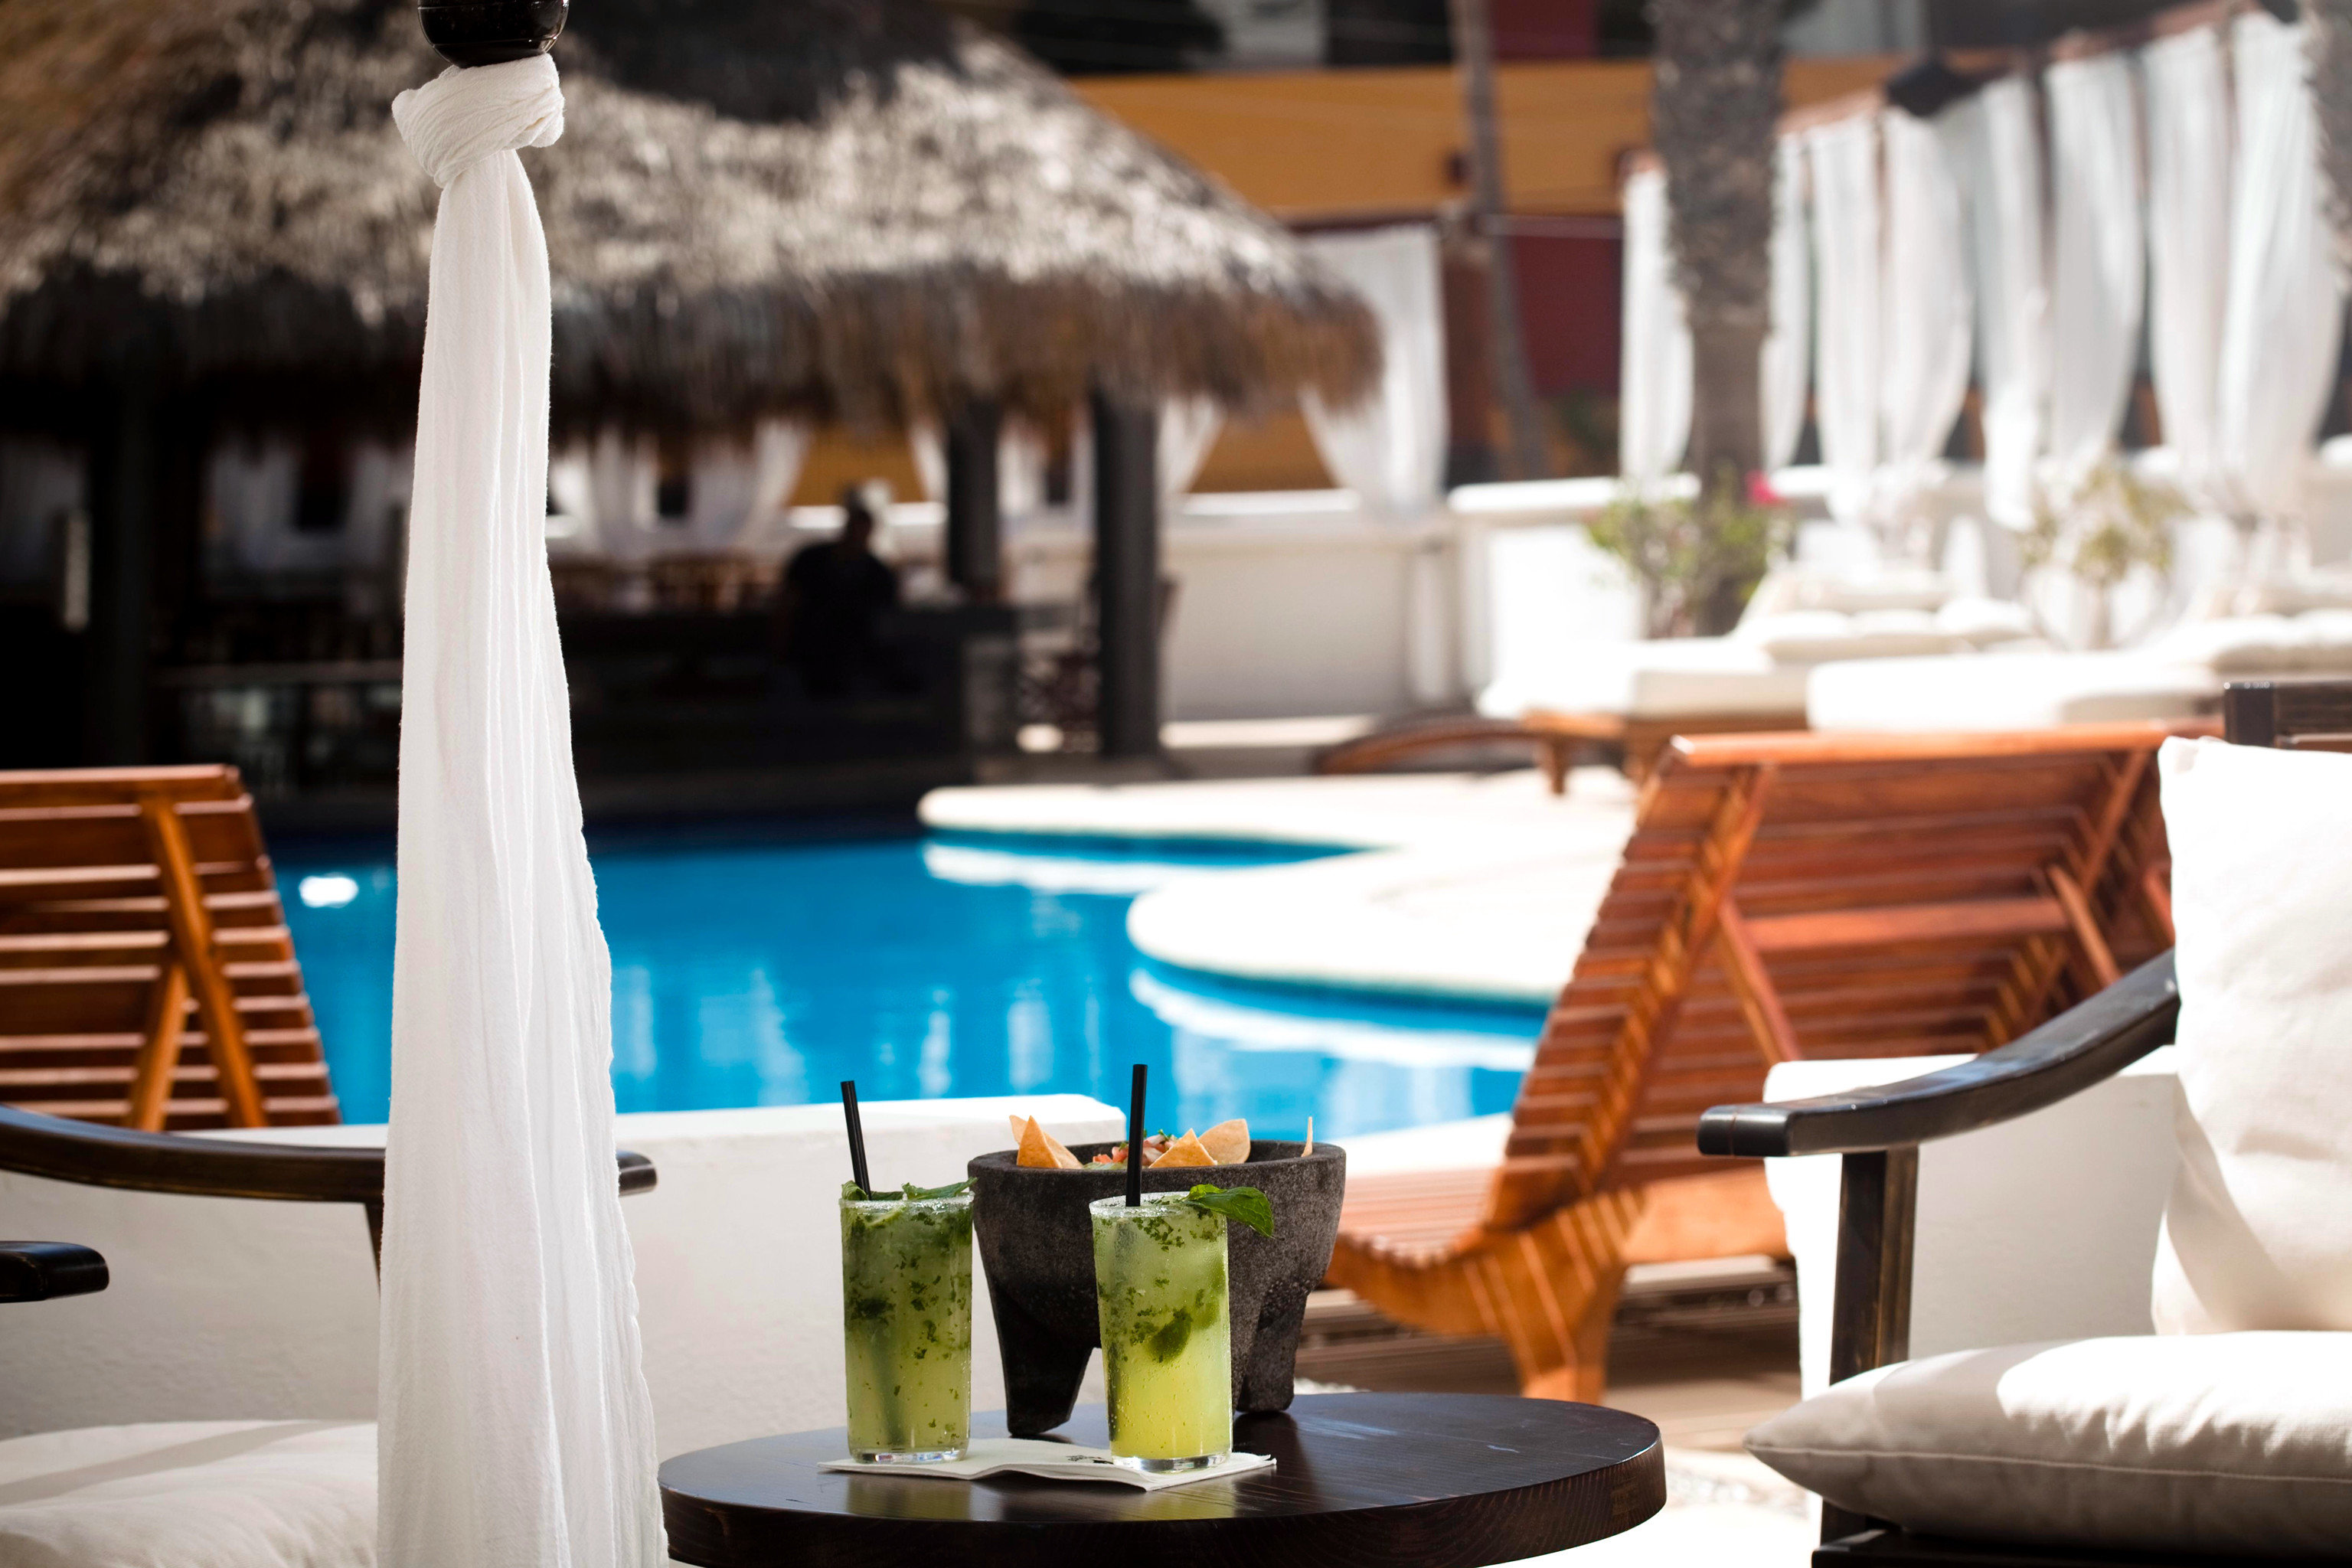 Drink Lounge Luxury Pool Resort restaurant home